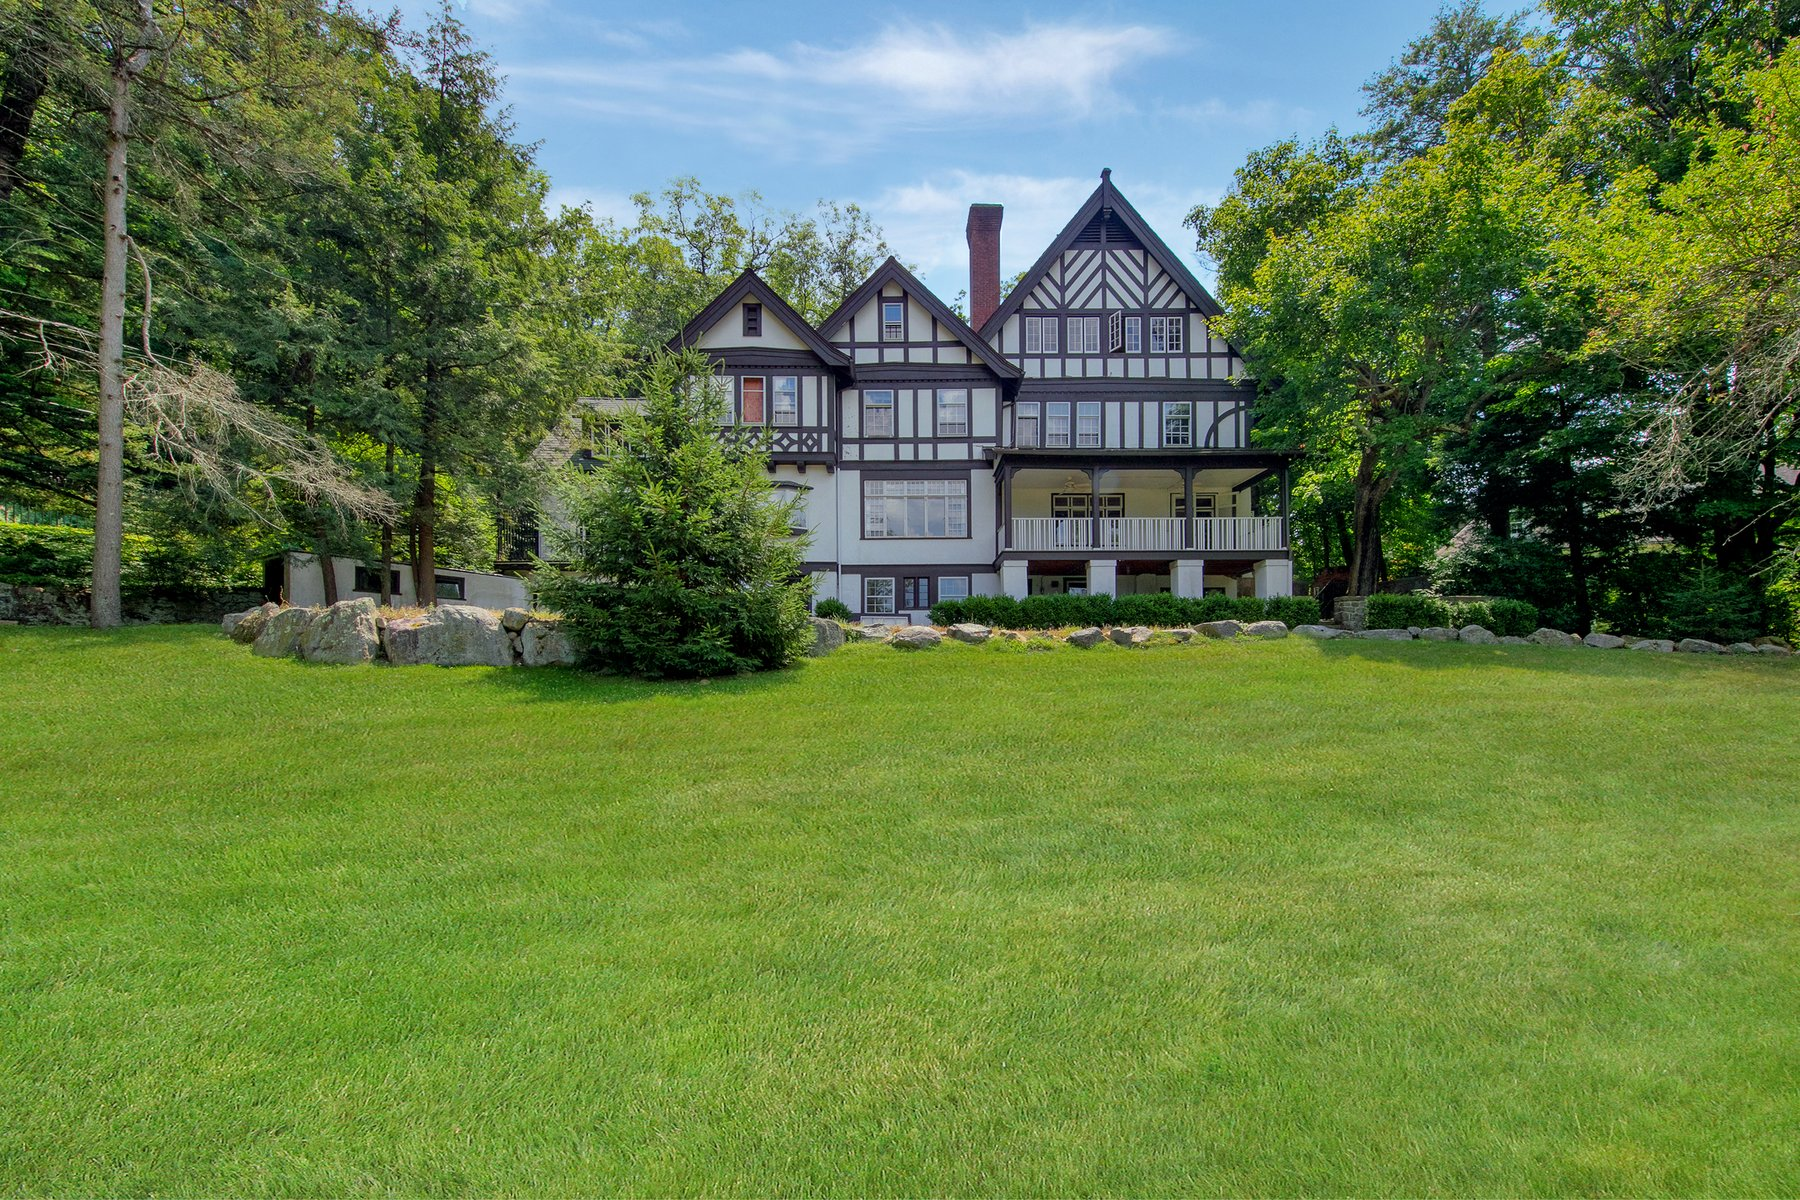 Single Family Home for Sale at Lorillard Cottage 130 Continental Road Tuxedo Park, New York 10987 United States